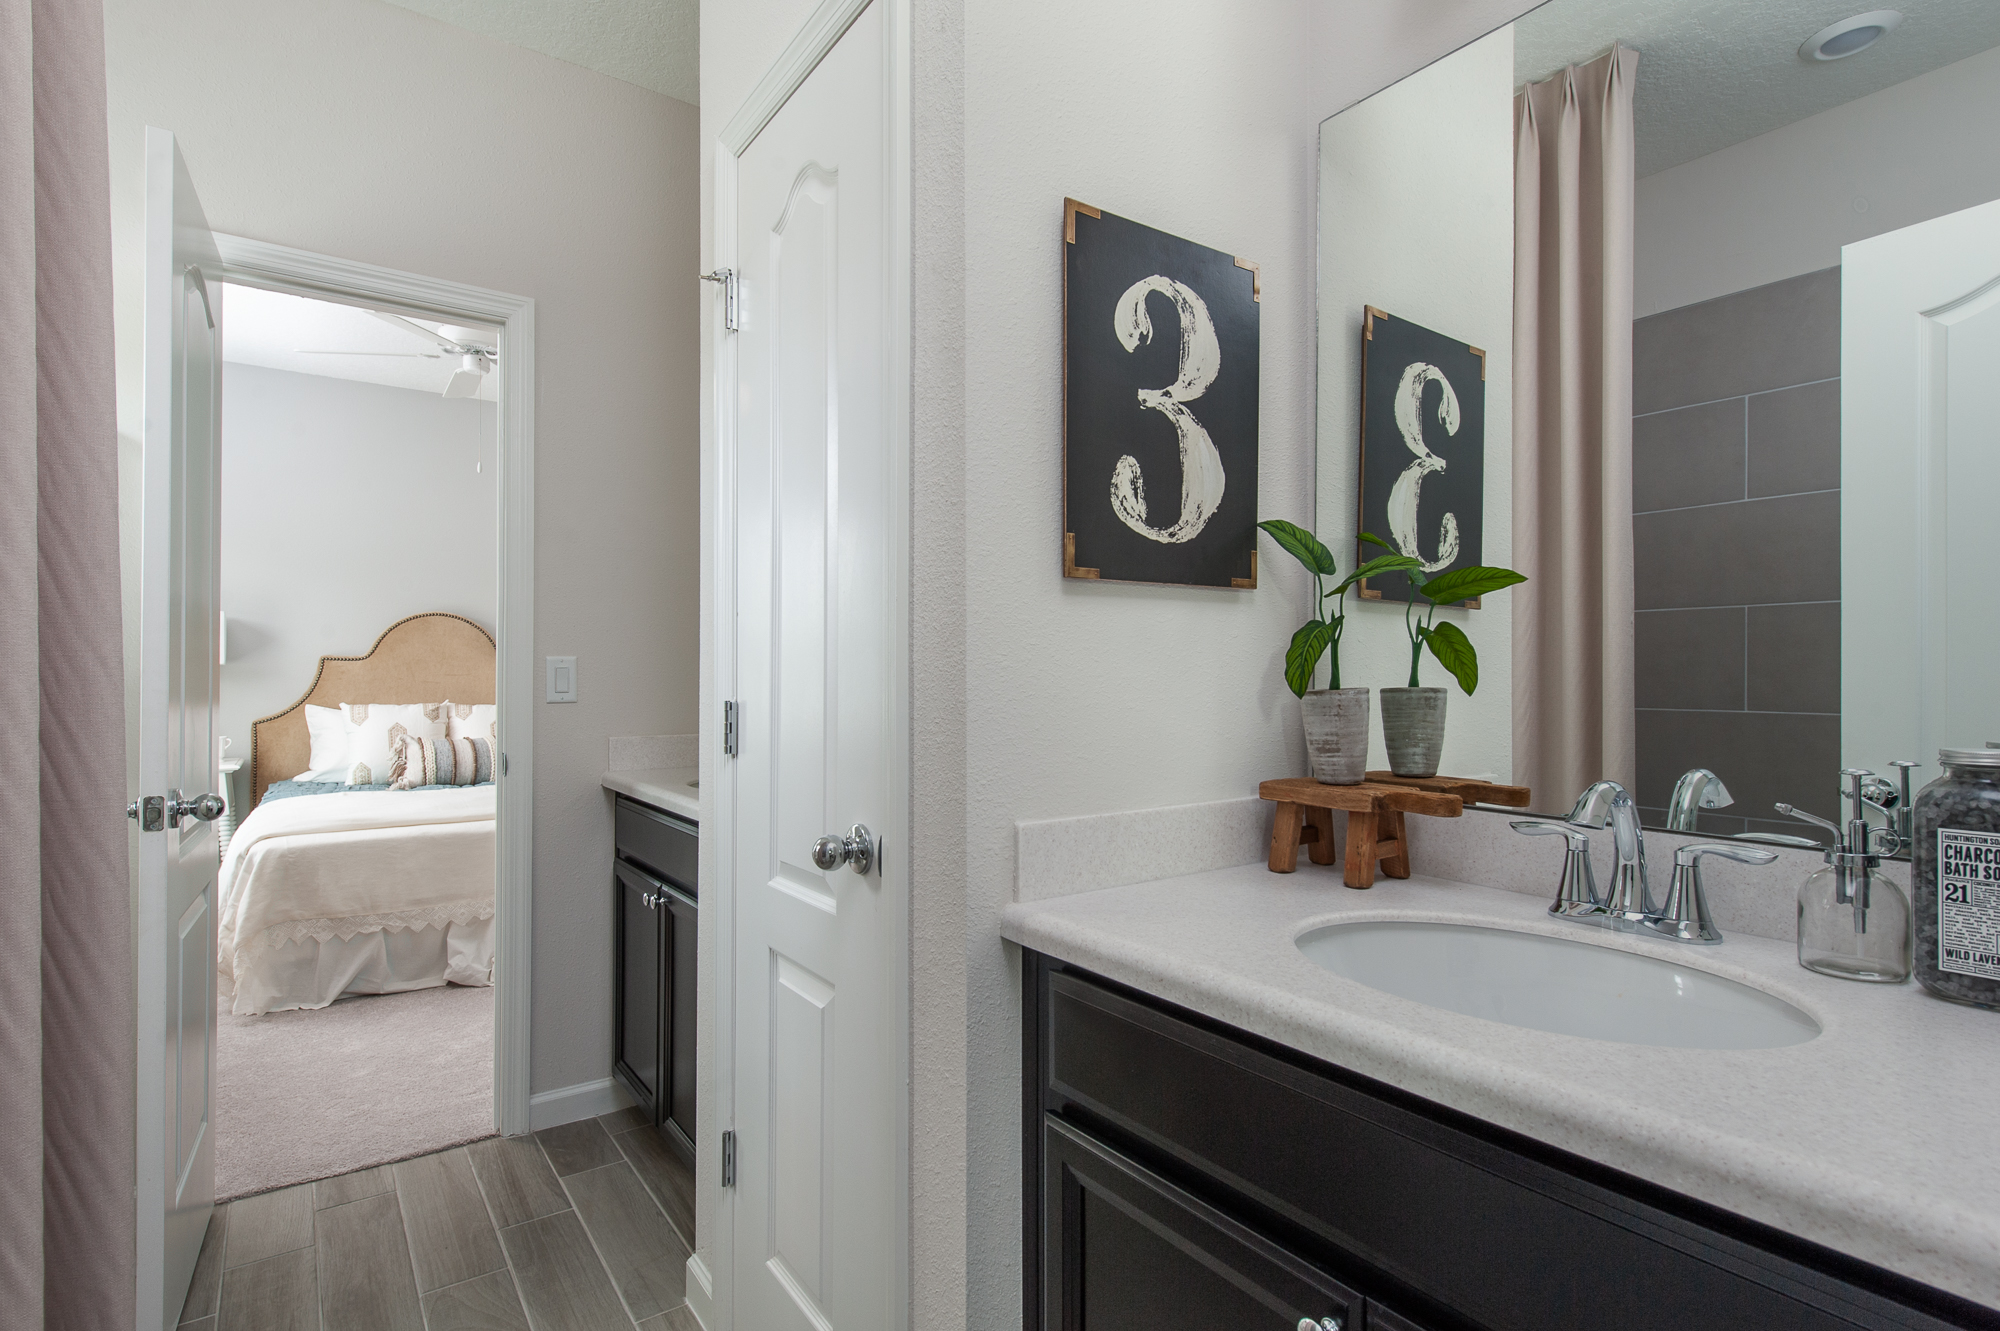 Micamy Design Studio_Model Home_Interior Design_Orchard Cove_Modern Coastal_Girls Room_Boys Room_Jack and Jill Bath.jpg